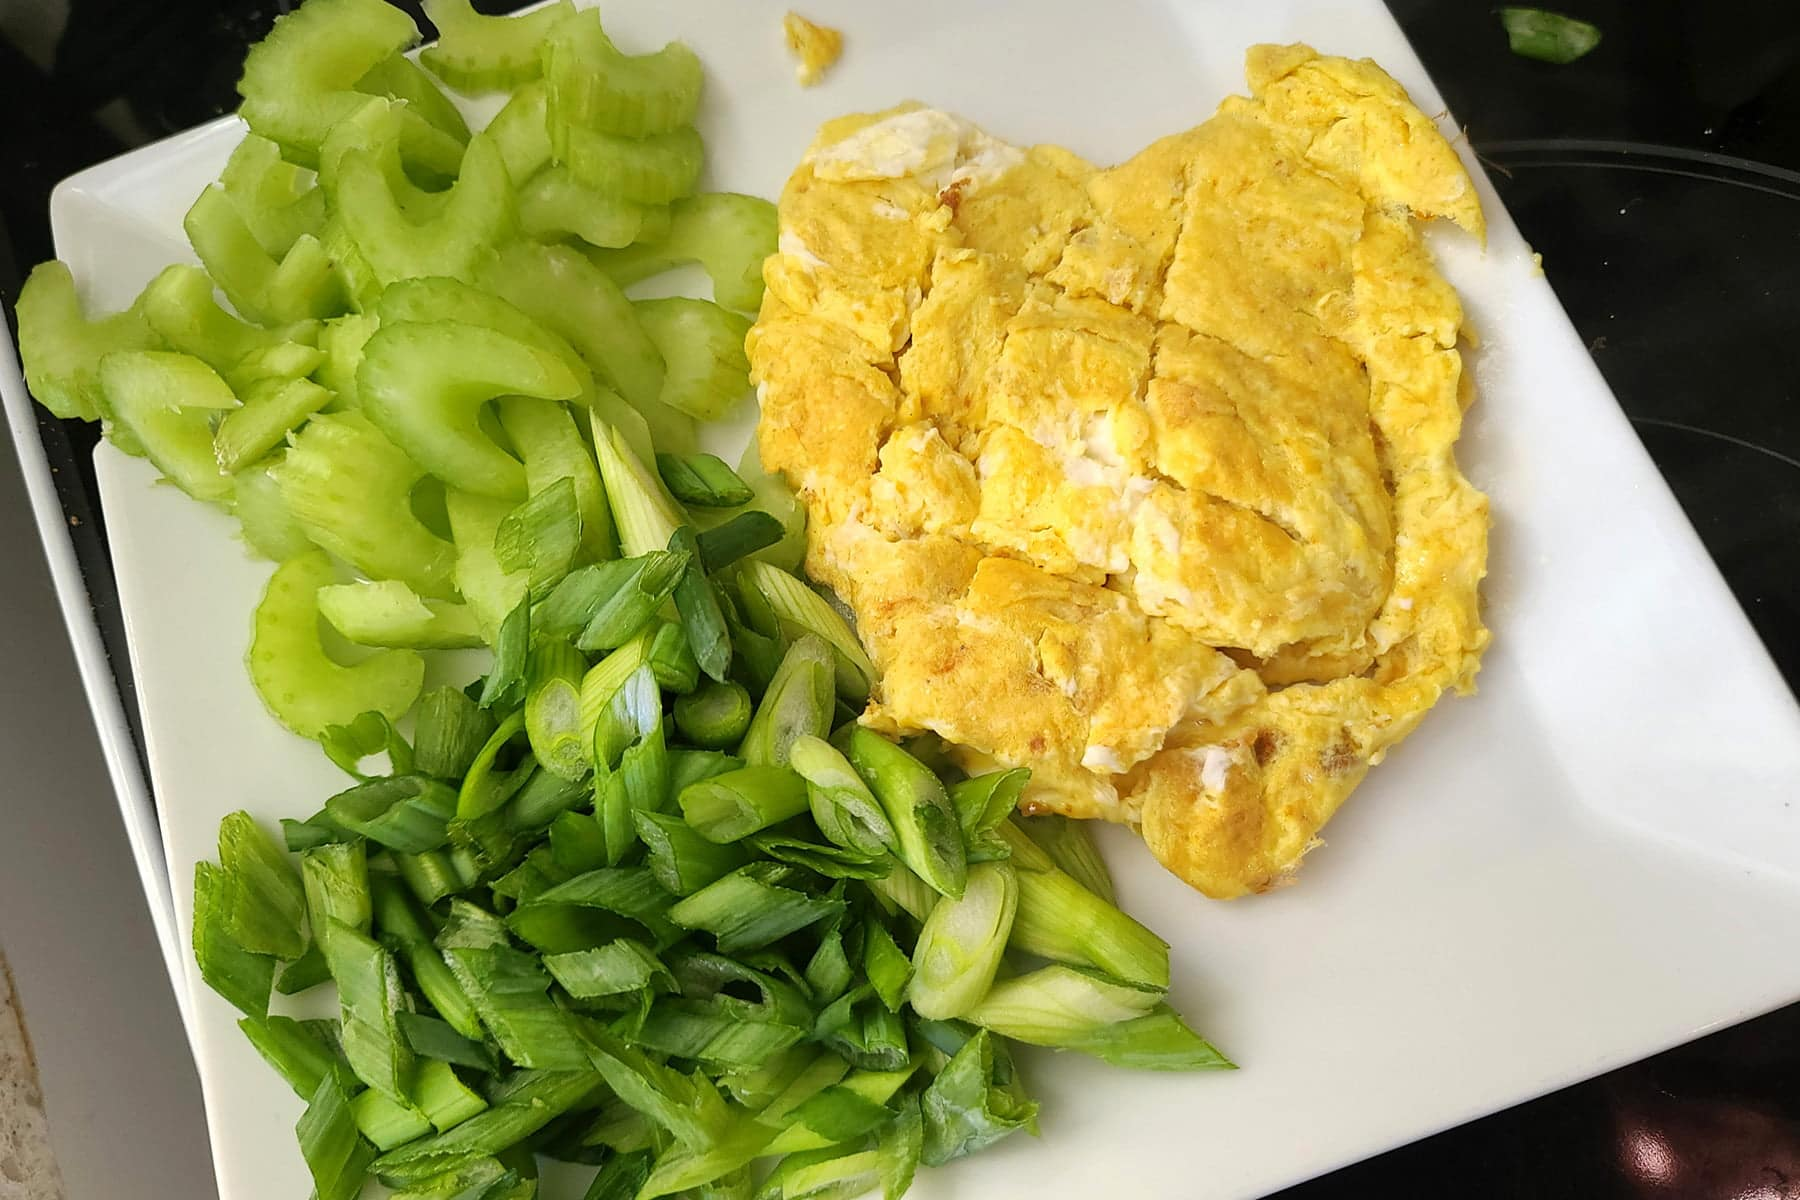 A white plate with scrambled eggs, celery, and green onions on it.